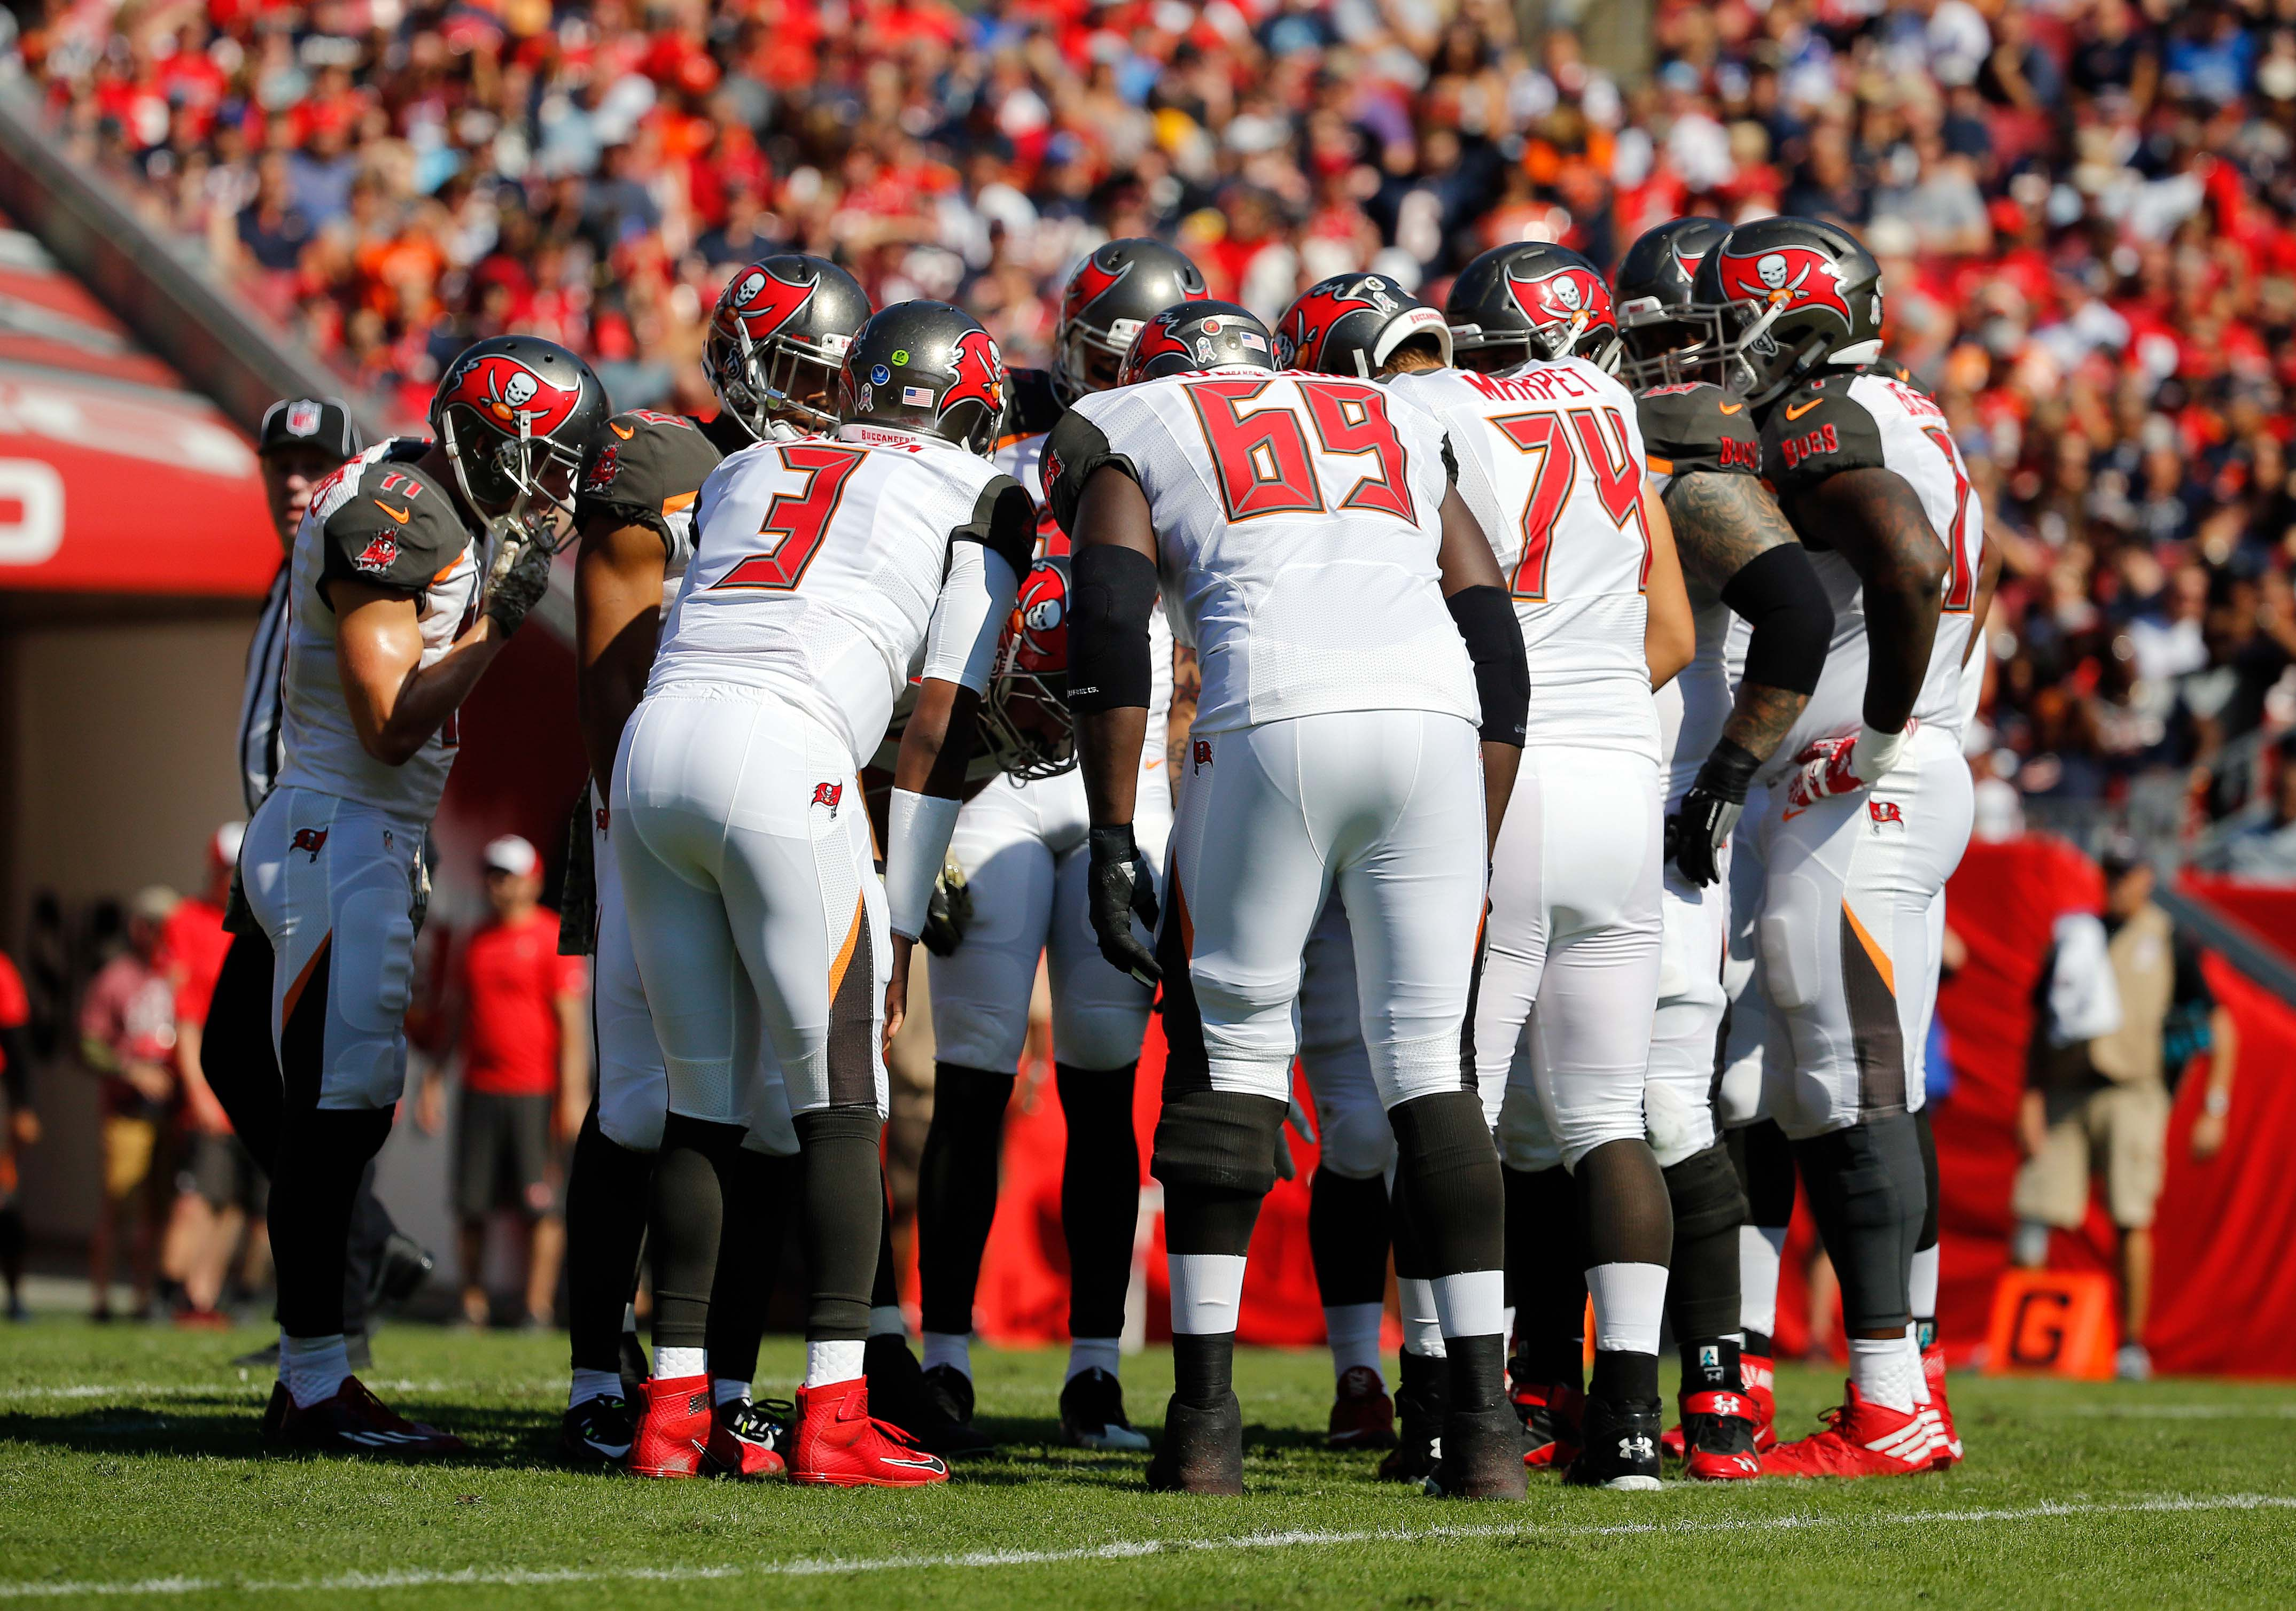 9687952-nfl-chicago-bears-at-tampa-bay-buccaneers